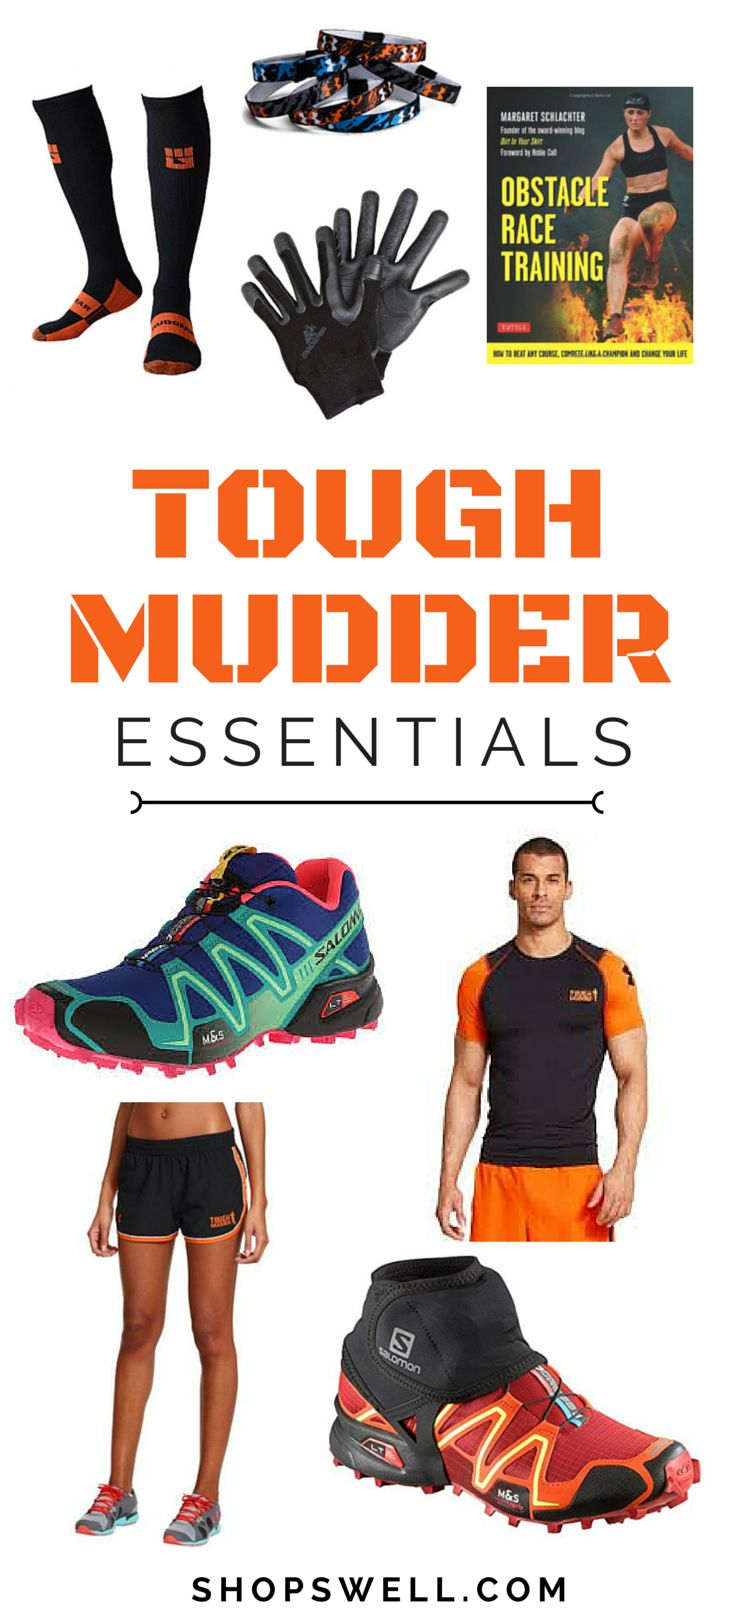 If you like doing obstacle course races or are training for your next Tough Mudder race, here are some items you will need to have a fun and memorable run.